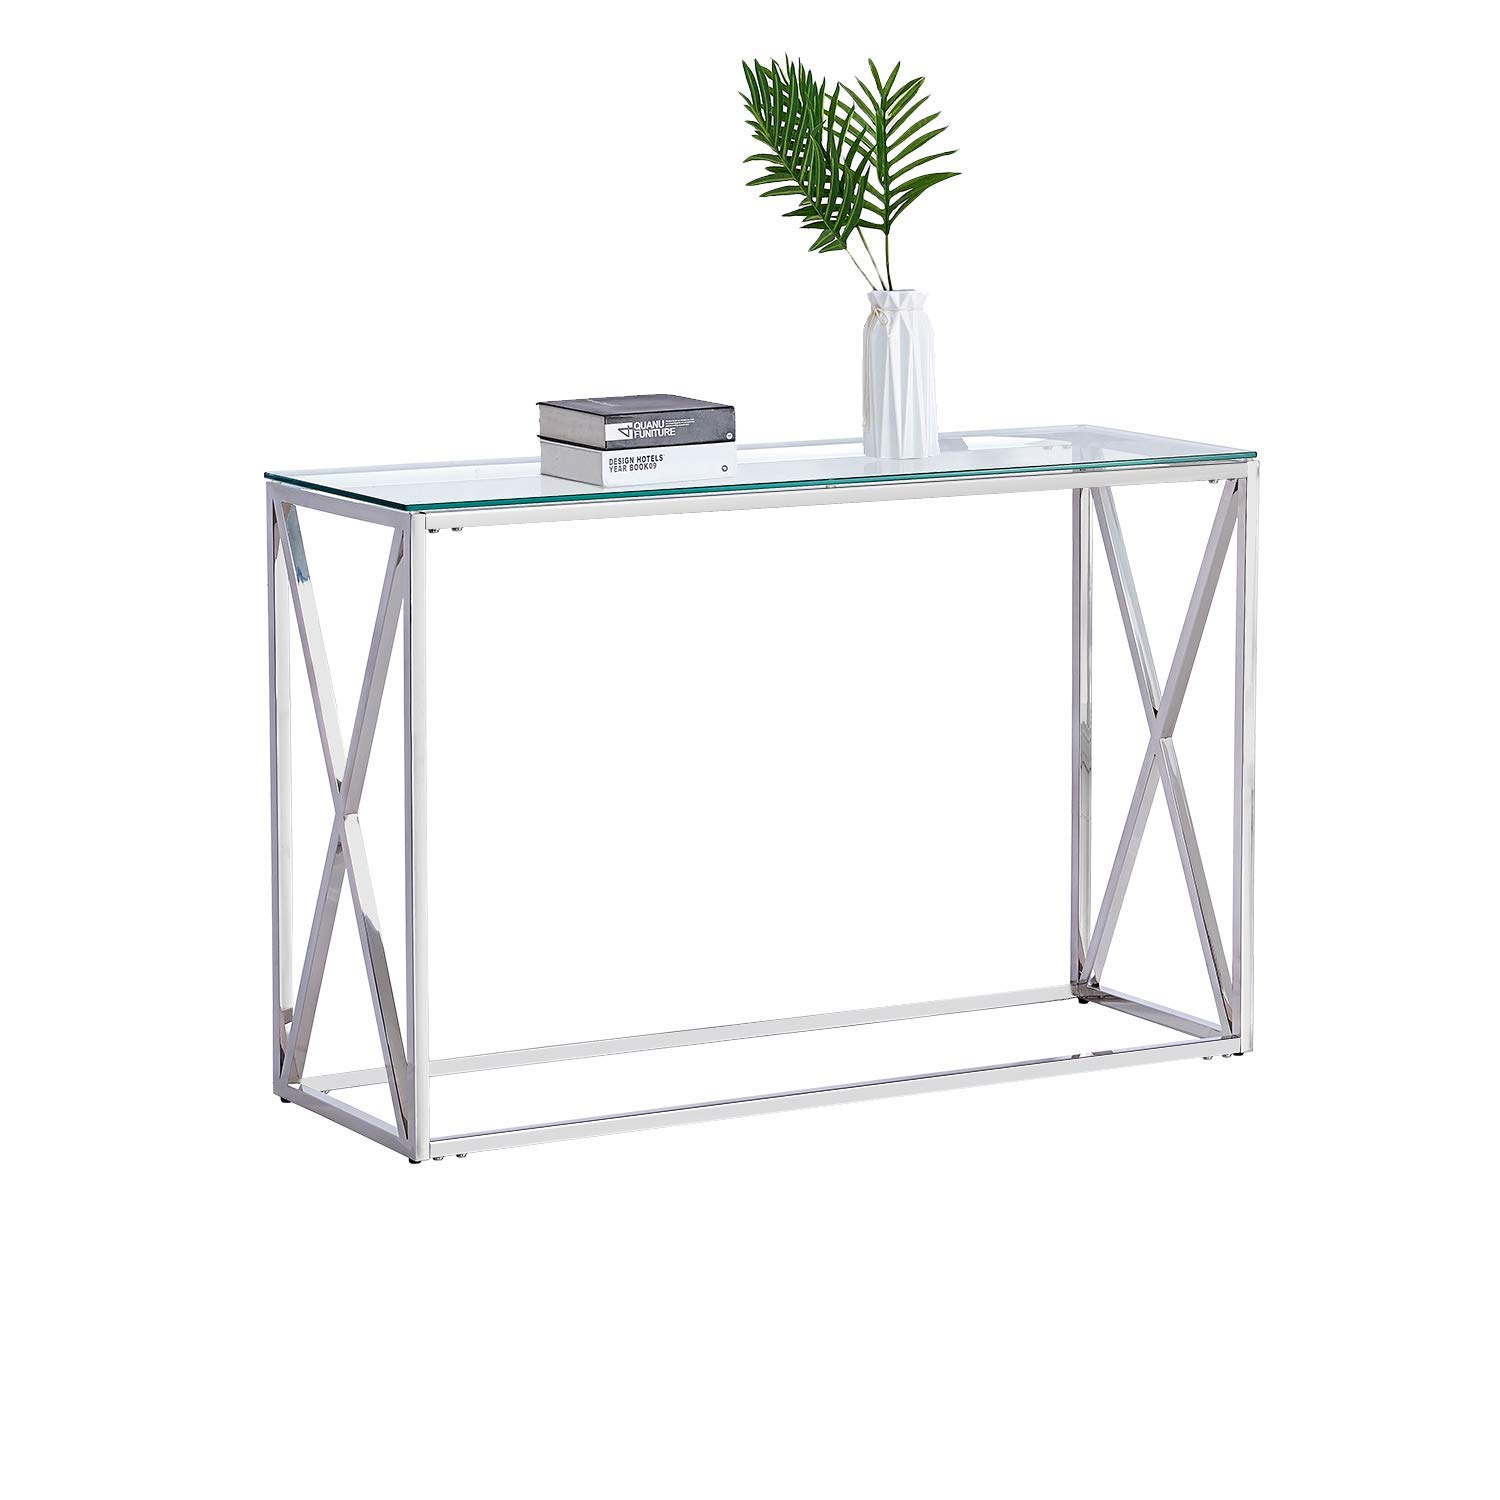 Trustiwood Modern Console Table, Entryway Table, Clear Glass Top Sofa Table for Living Room Entryway Hallway Steel Base, Easy Assembly,Silver